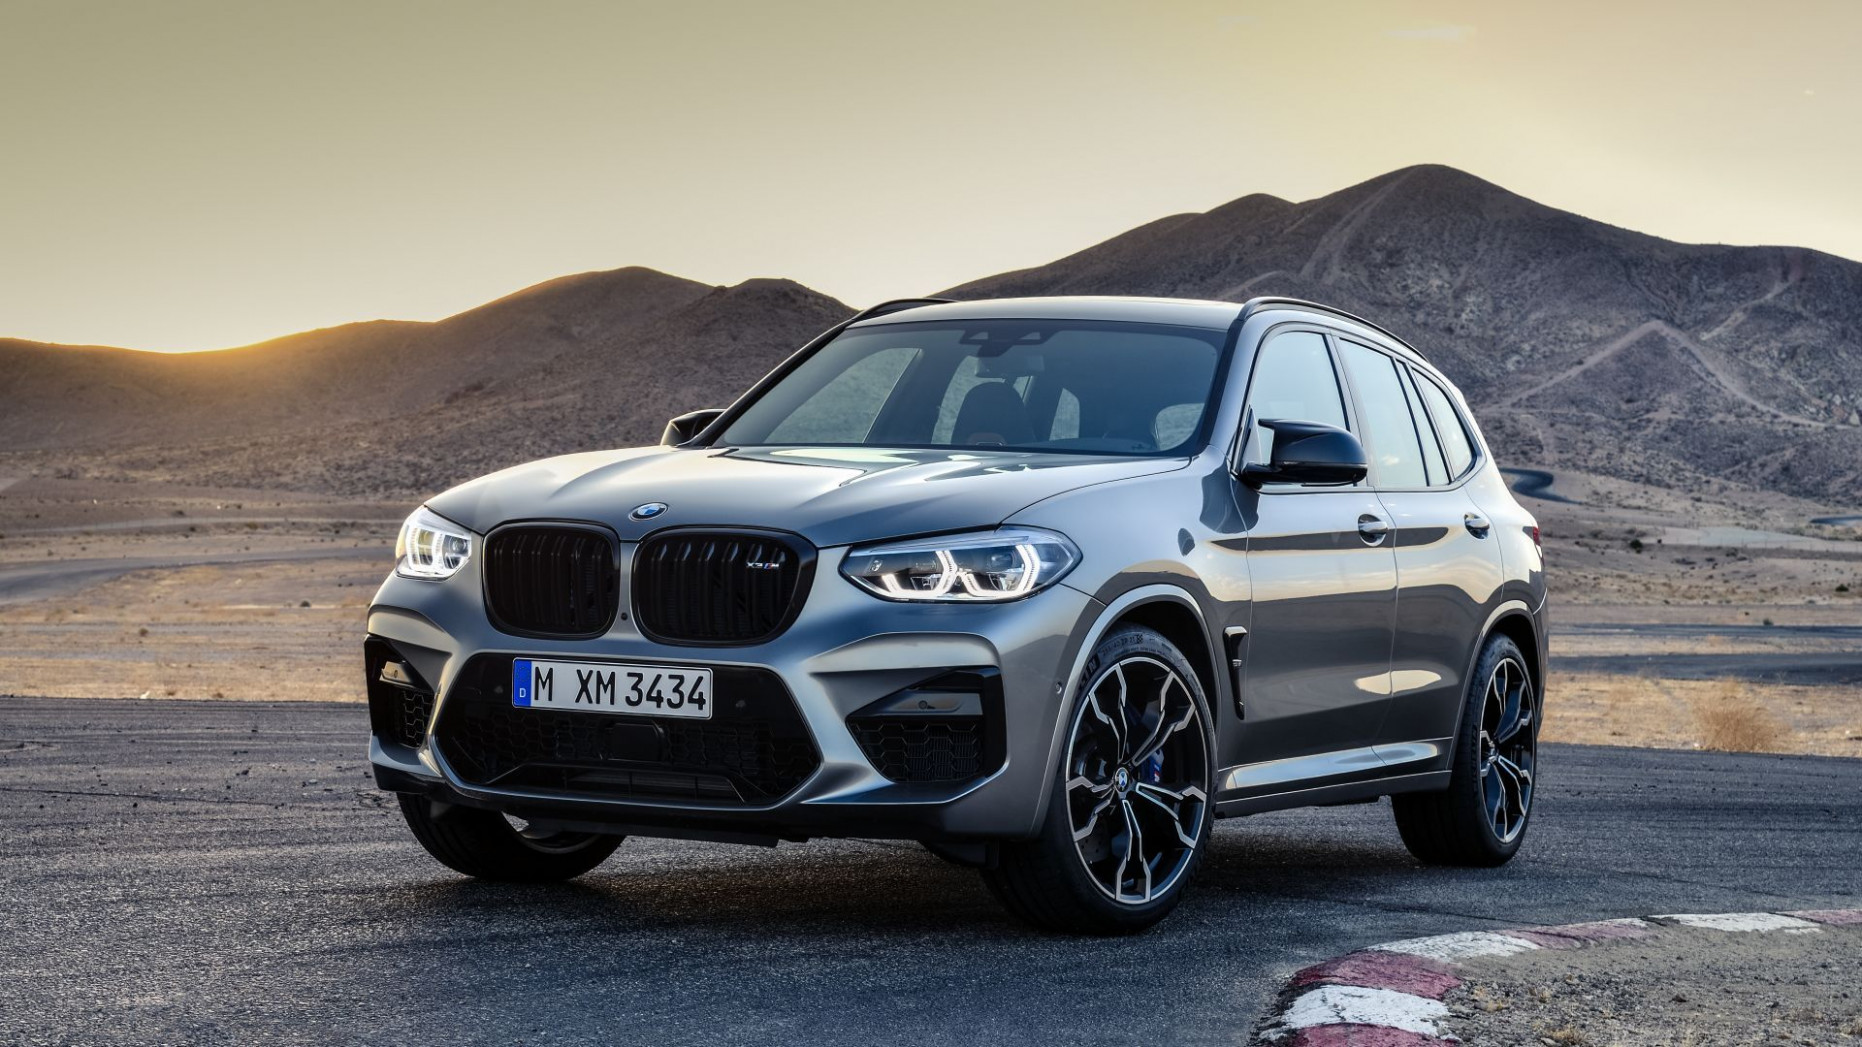 BMW outsells Mercedes-Benz in Q8 8; Registers sales of 8,488 units - bmw q1 2020 sales